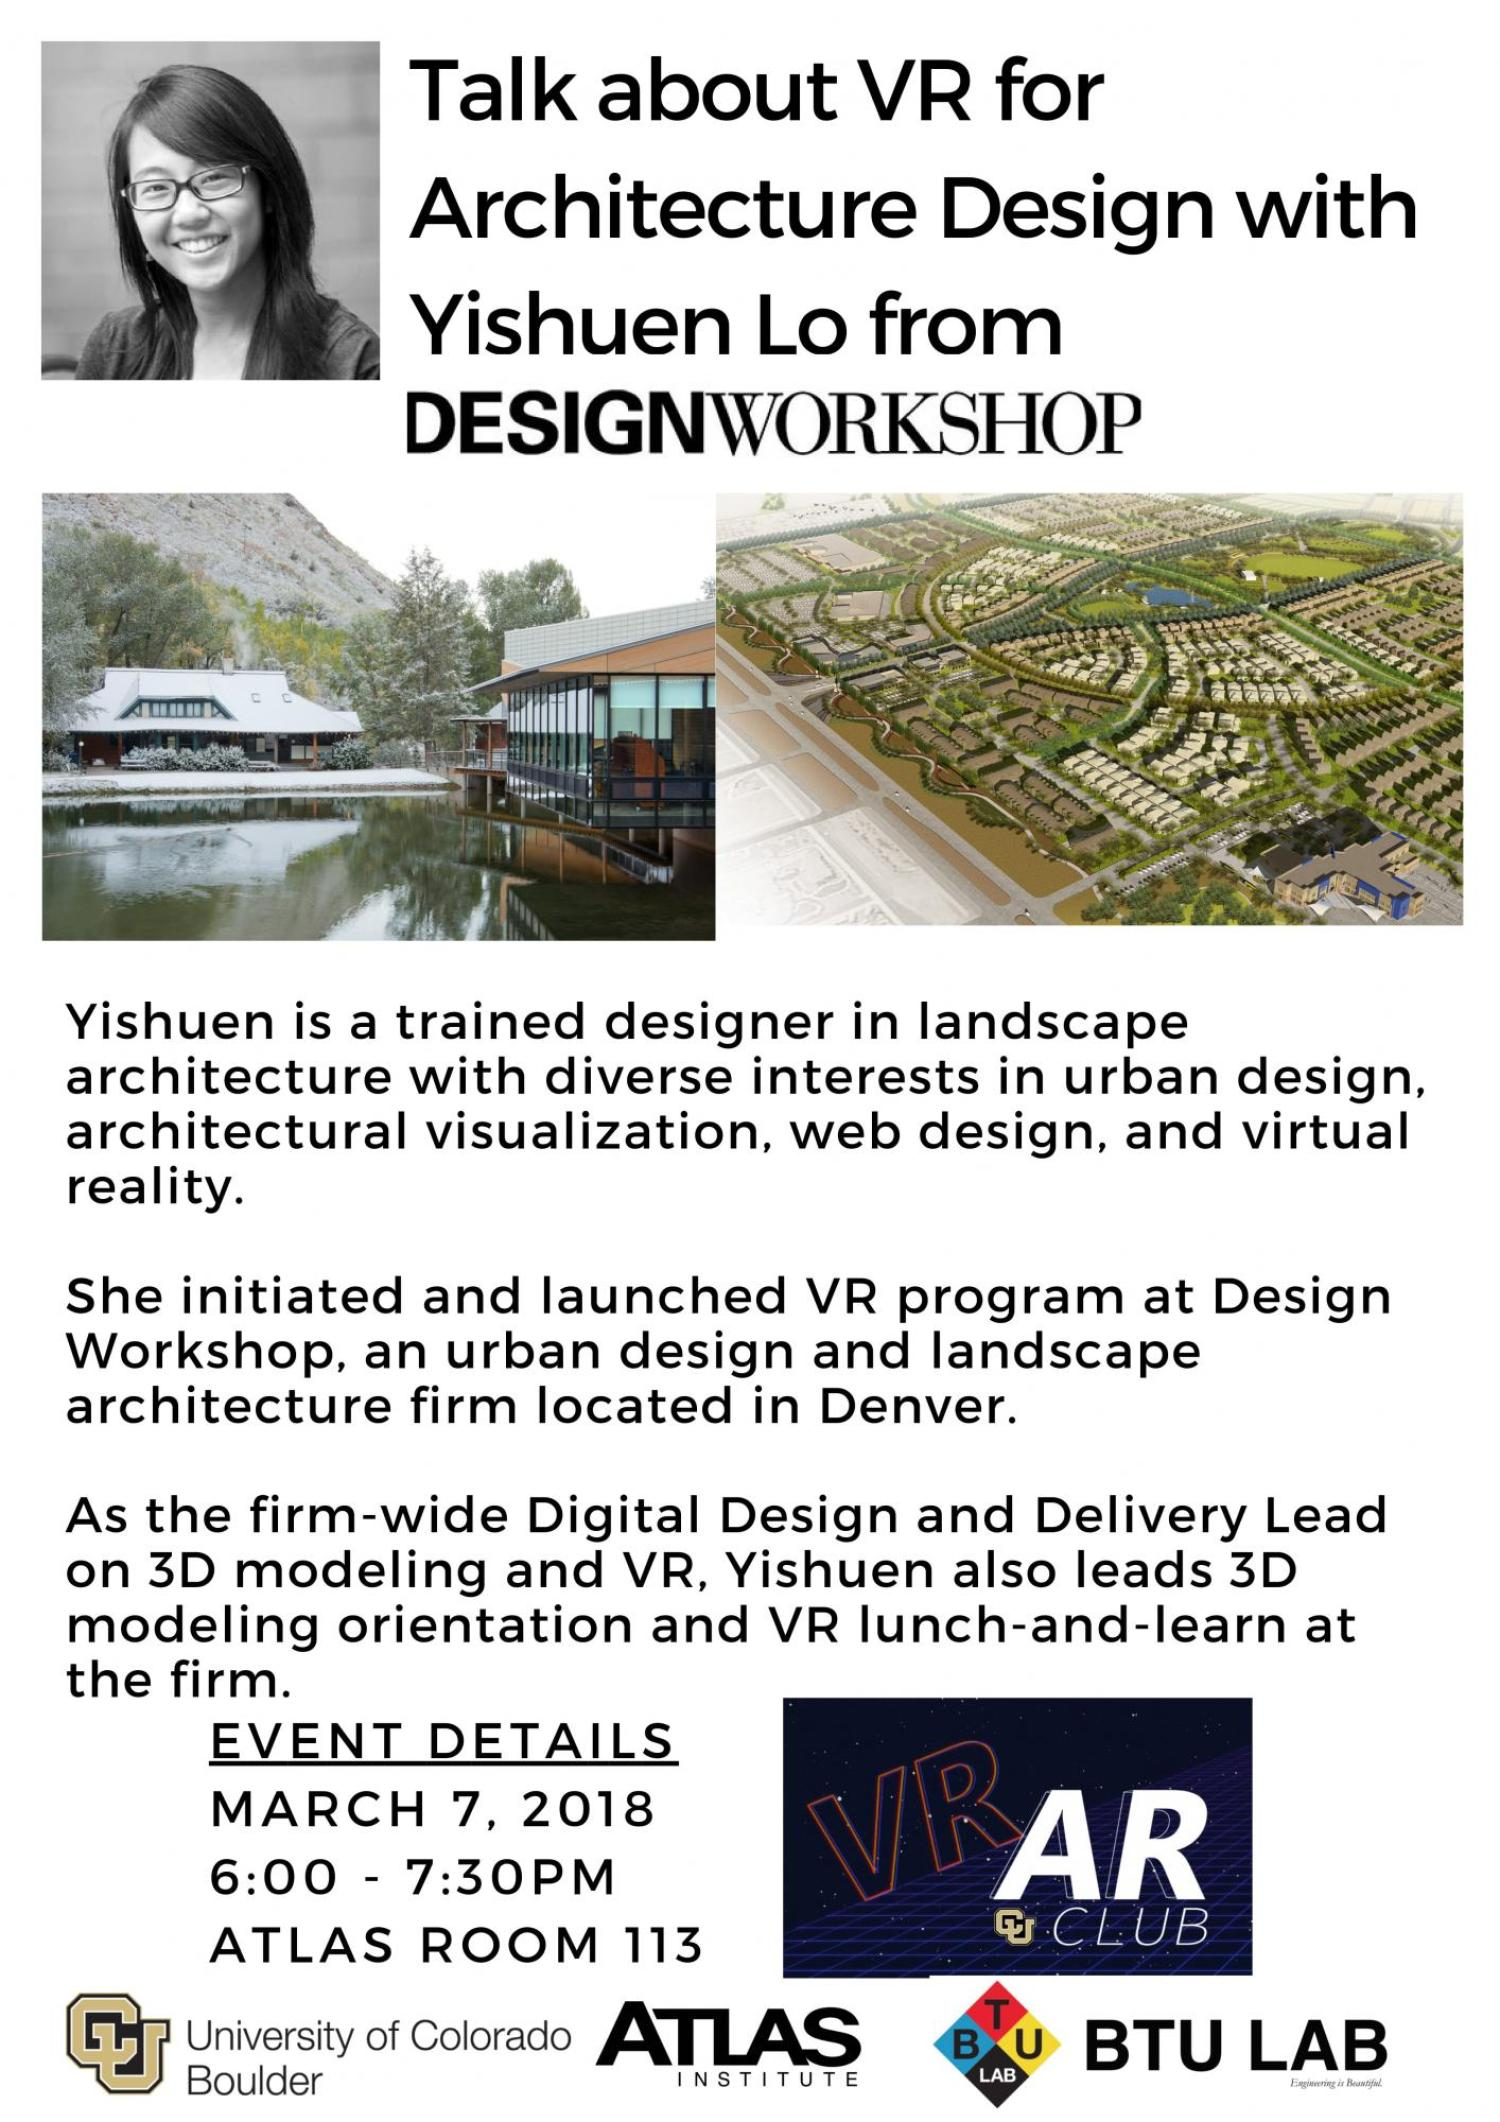 VR Architecture talk with Yisheun Lo from Design Workshop